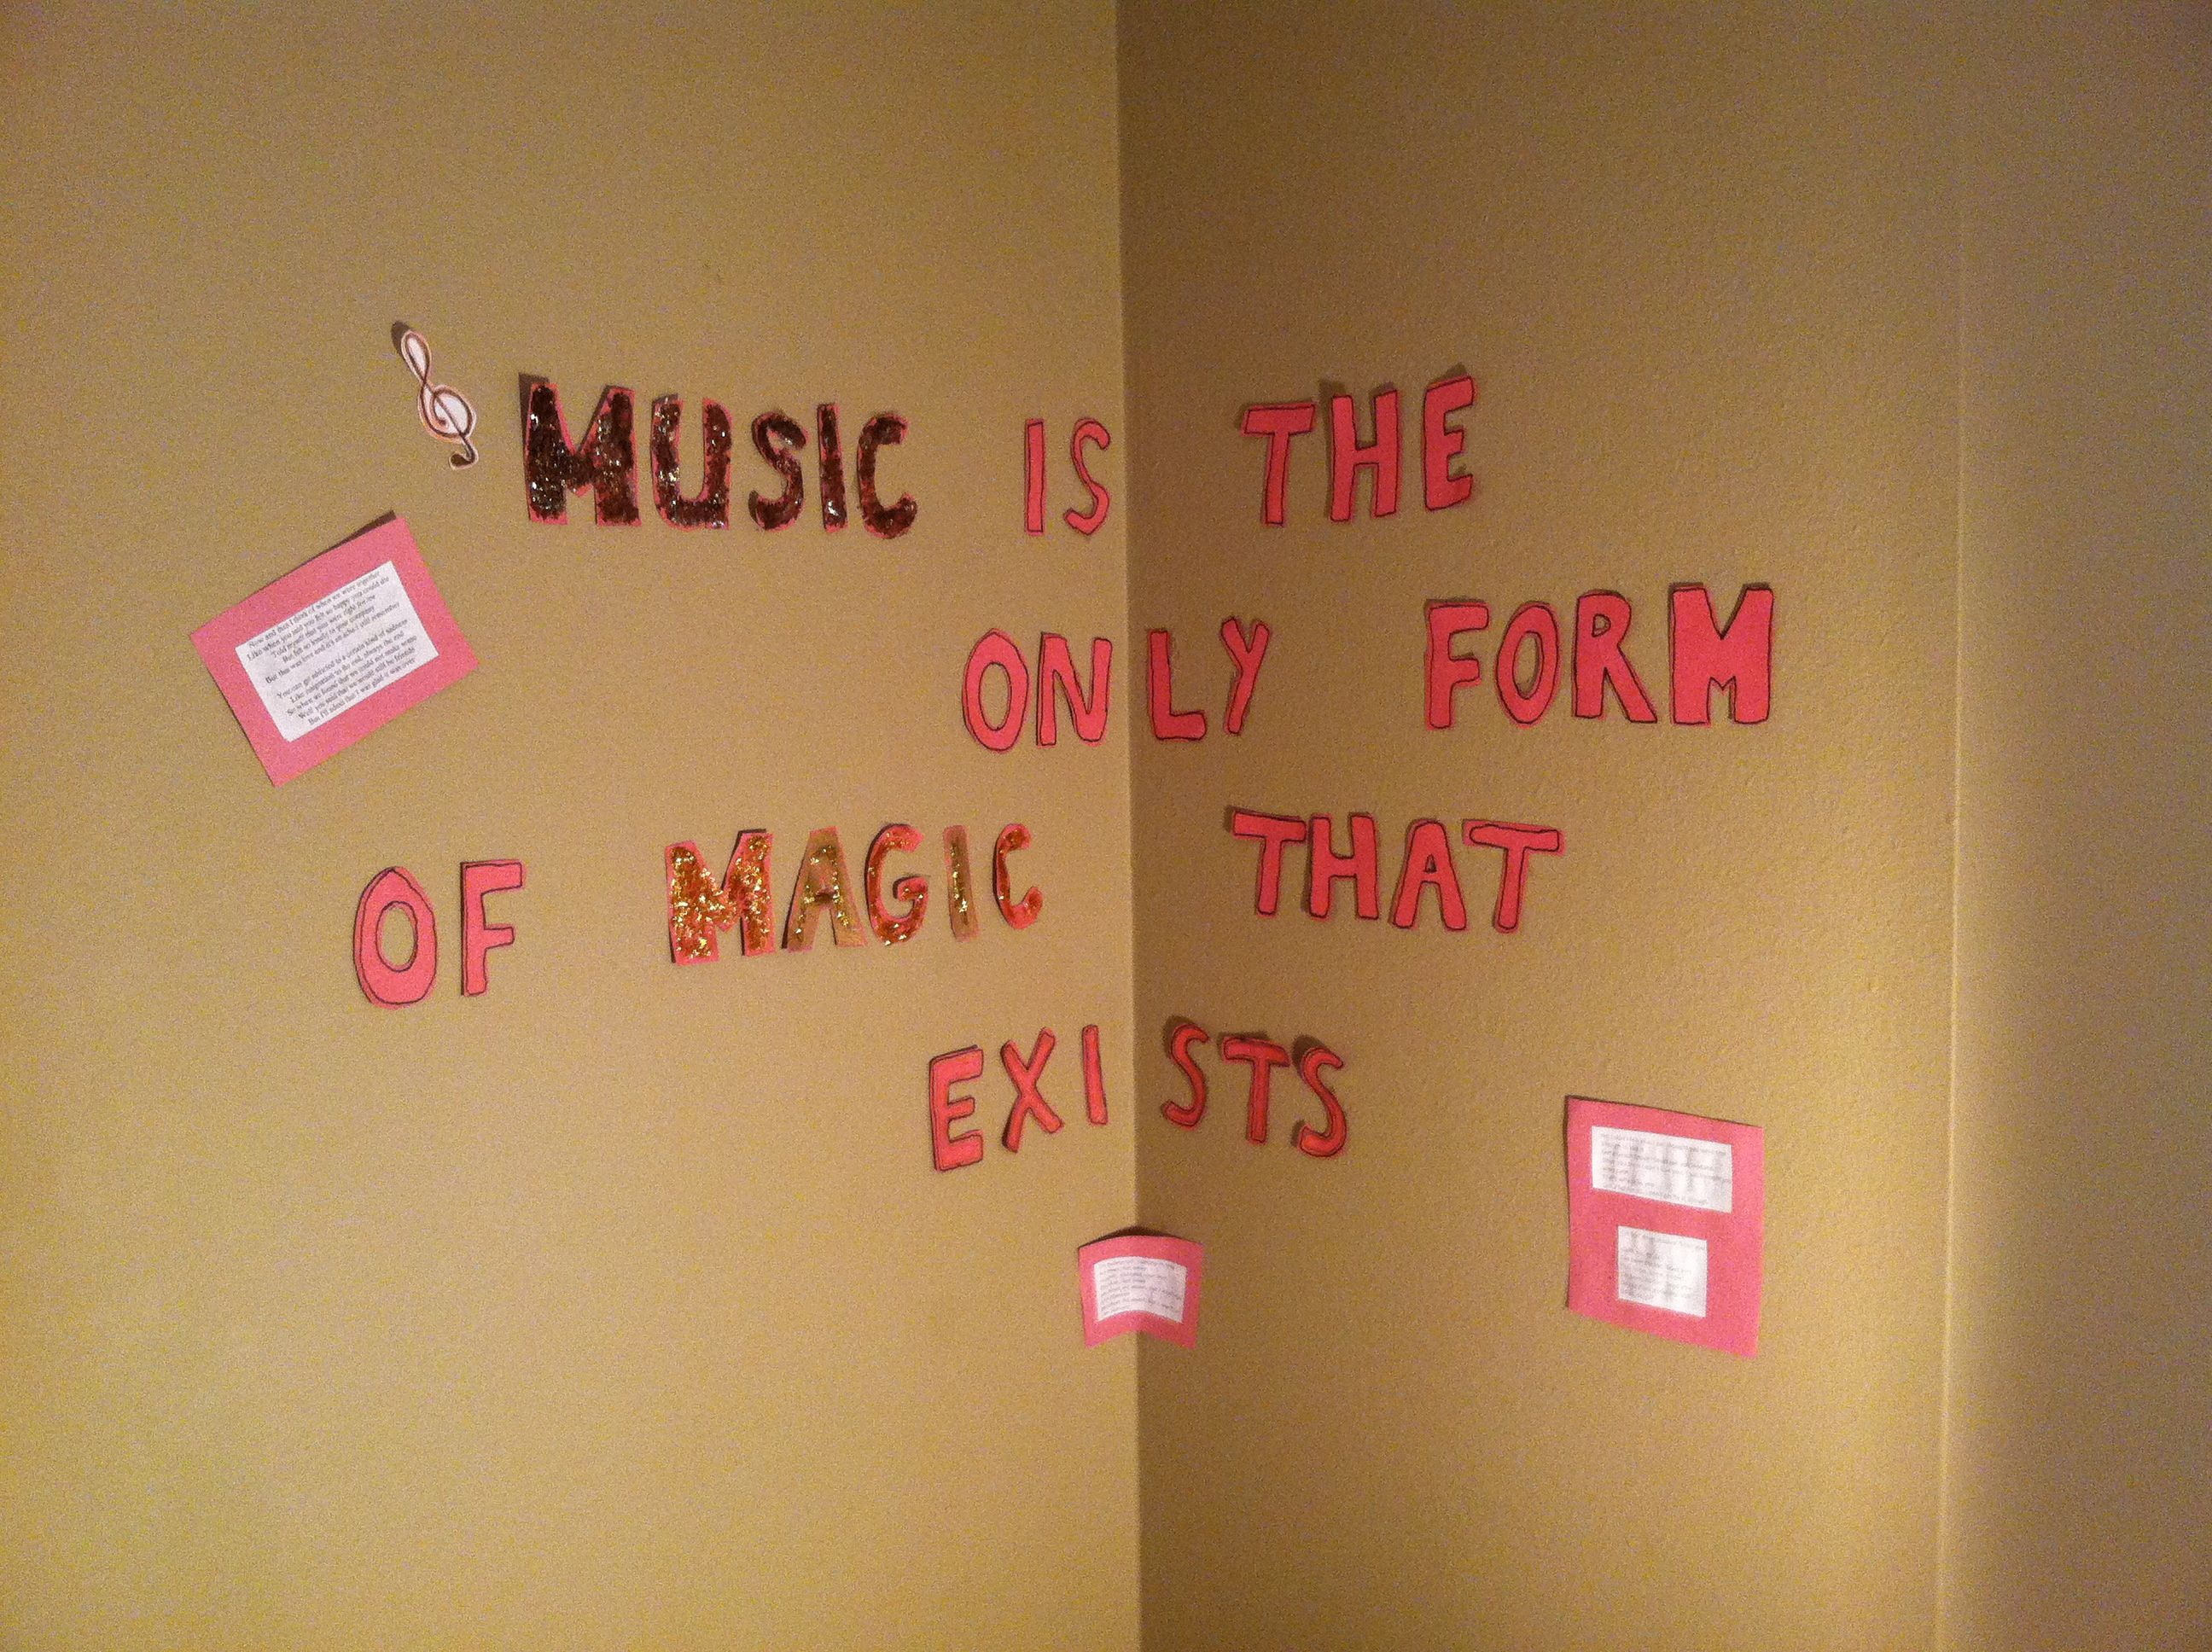 Letters To Put On Wall Tumblr Room Designreally Puts The Whole Room Togethercut Out